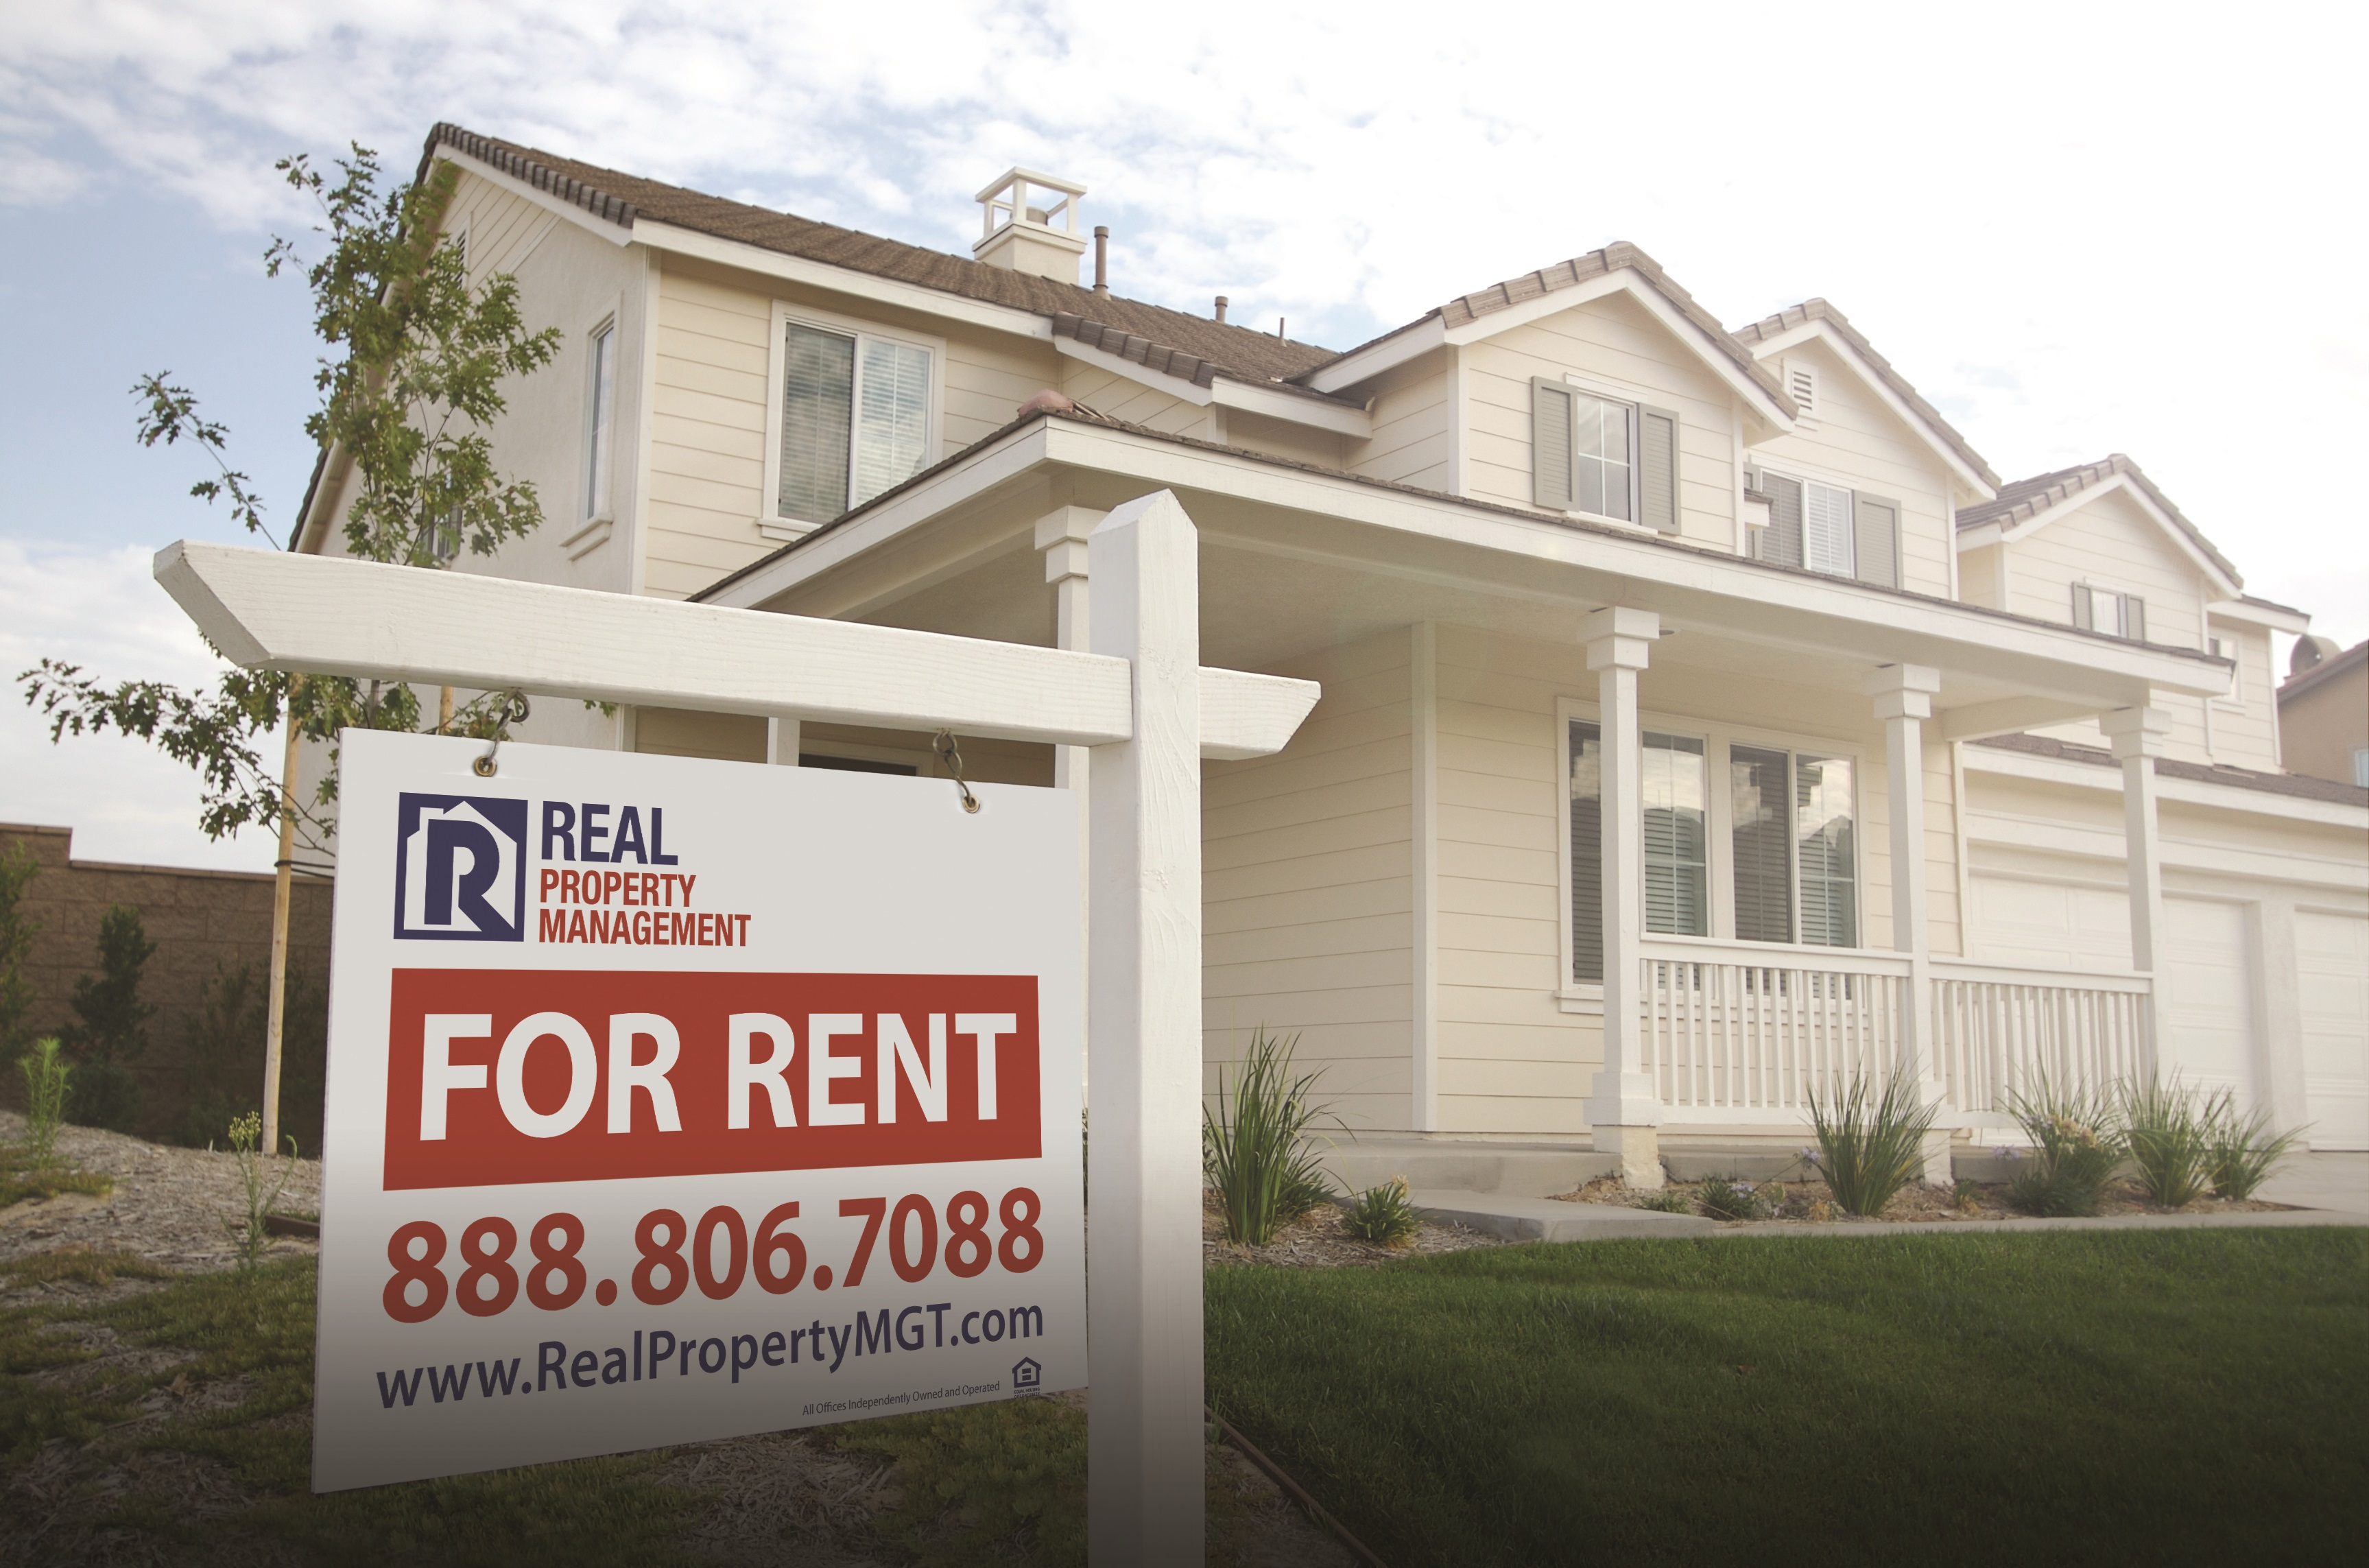 rental property with a sign in the front yard